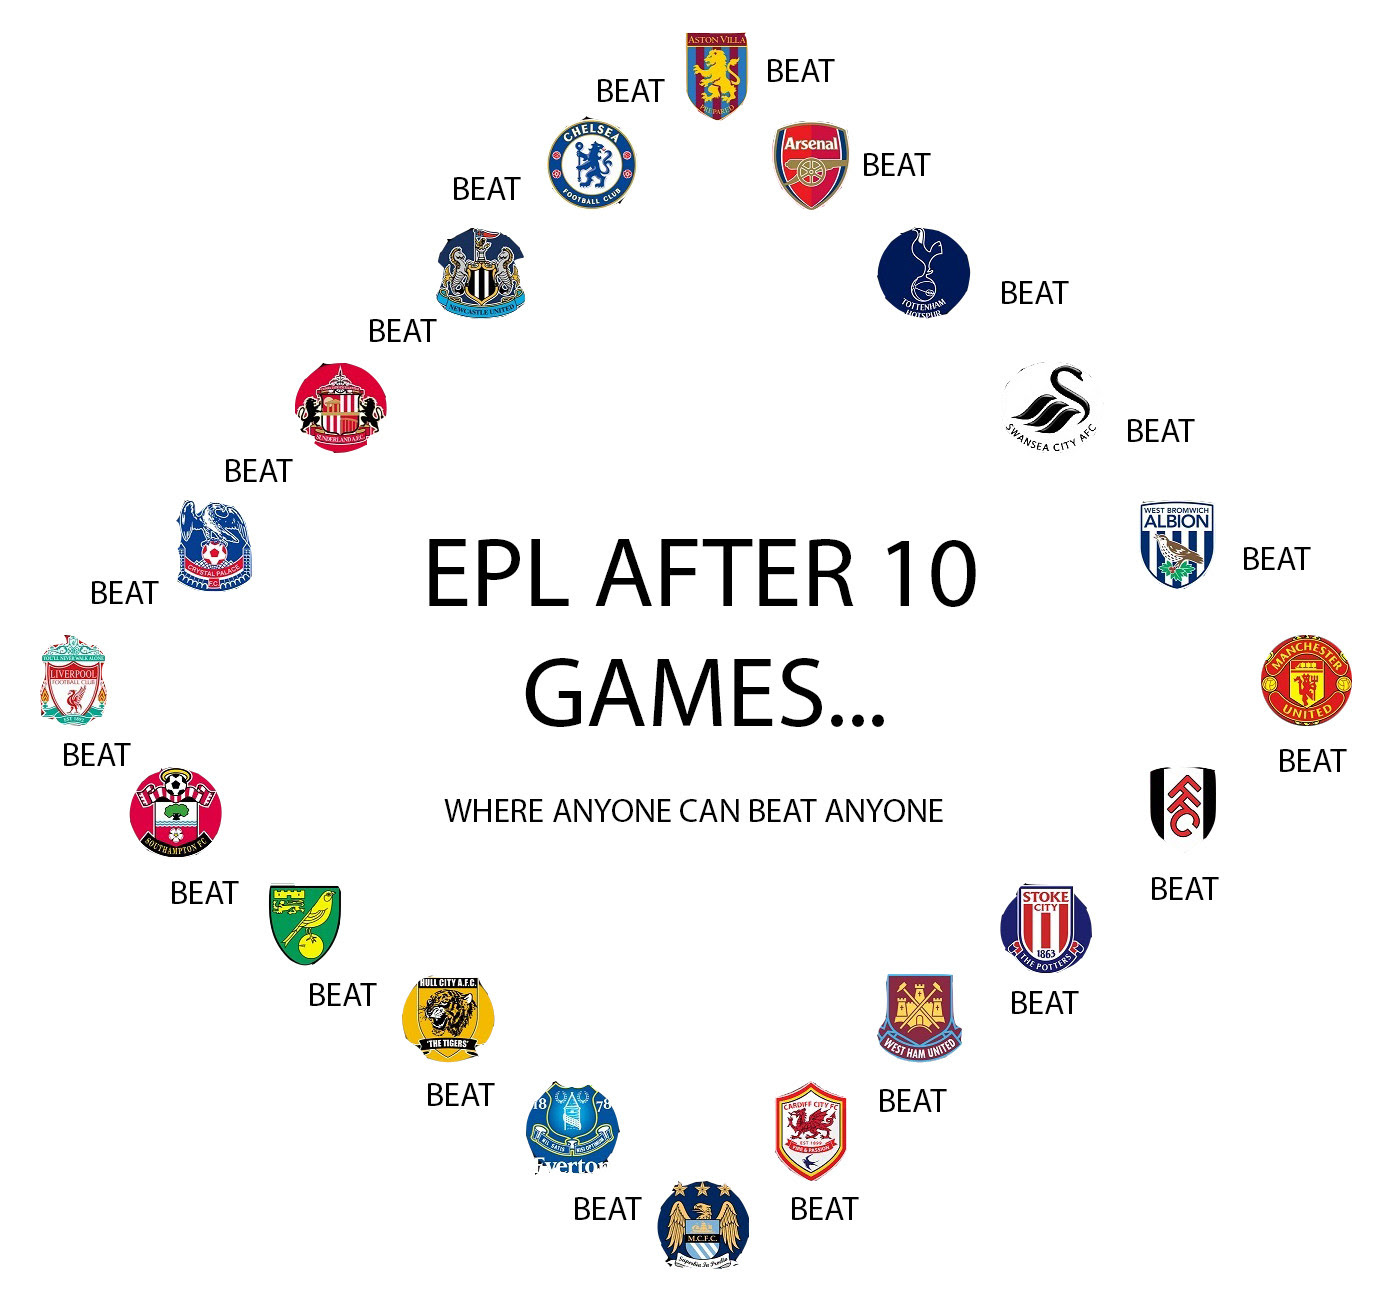 oGtMJF2 The Premier League: Where anyone can beat anyone! [Quality Graphic!]